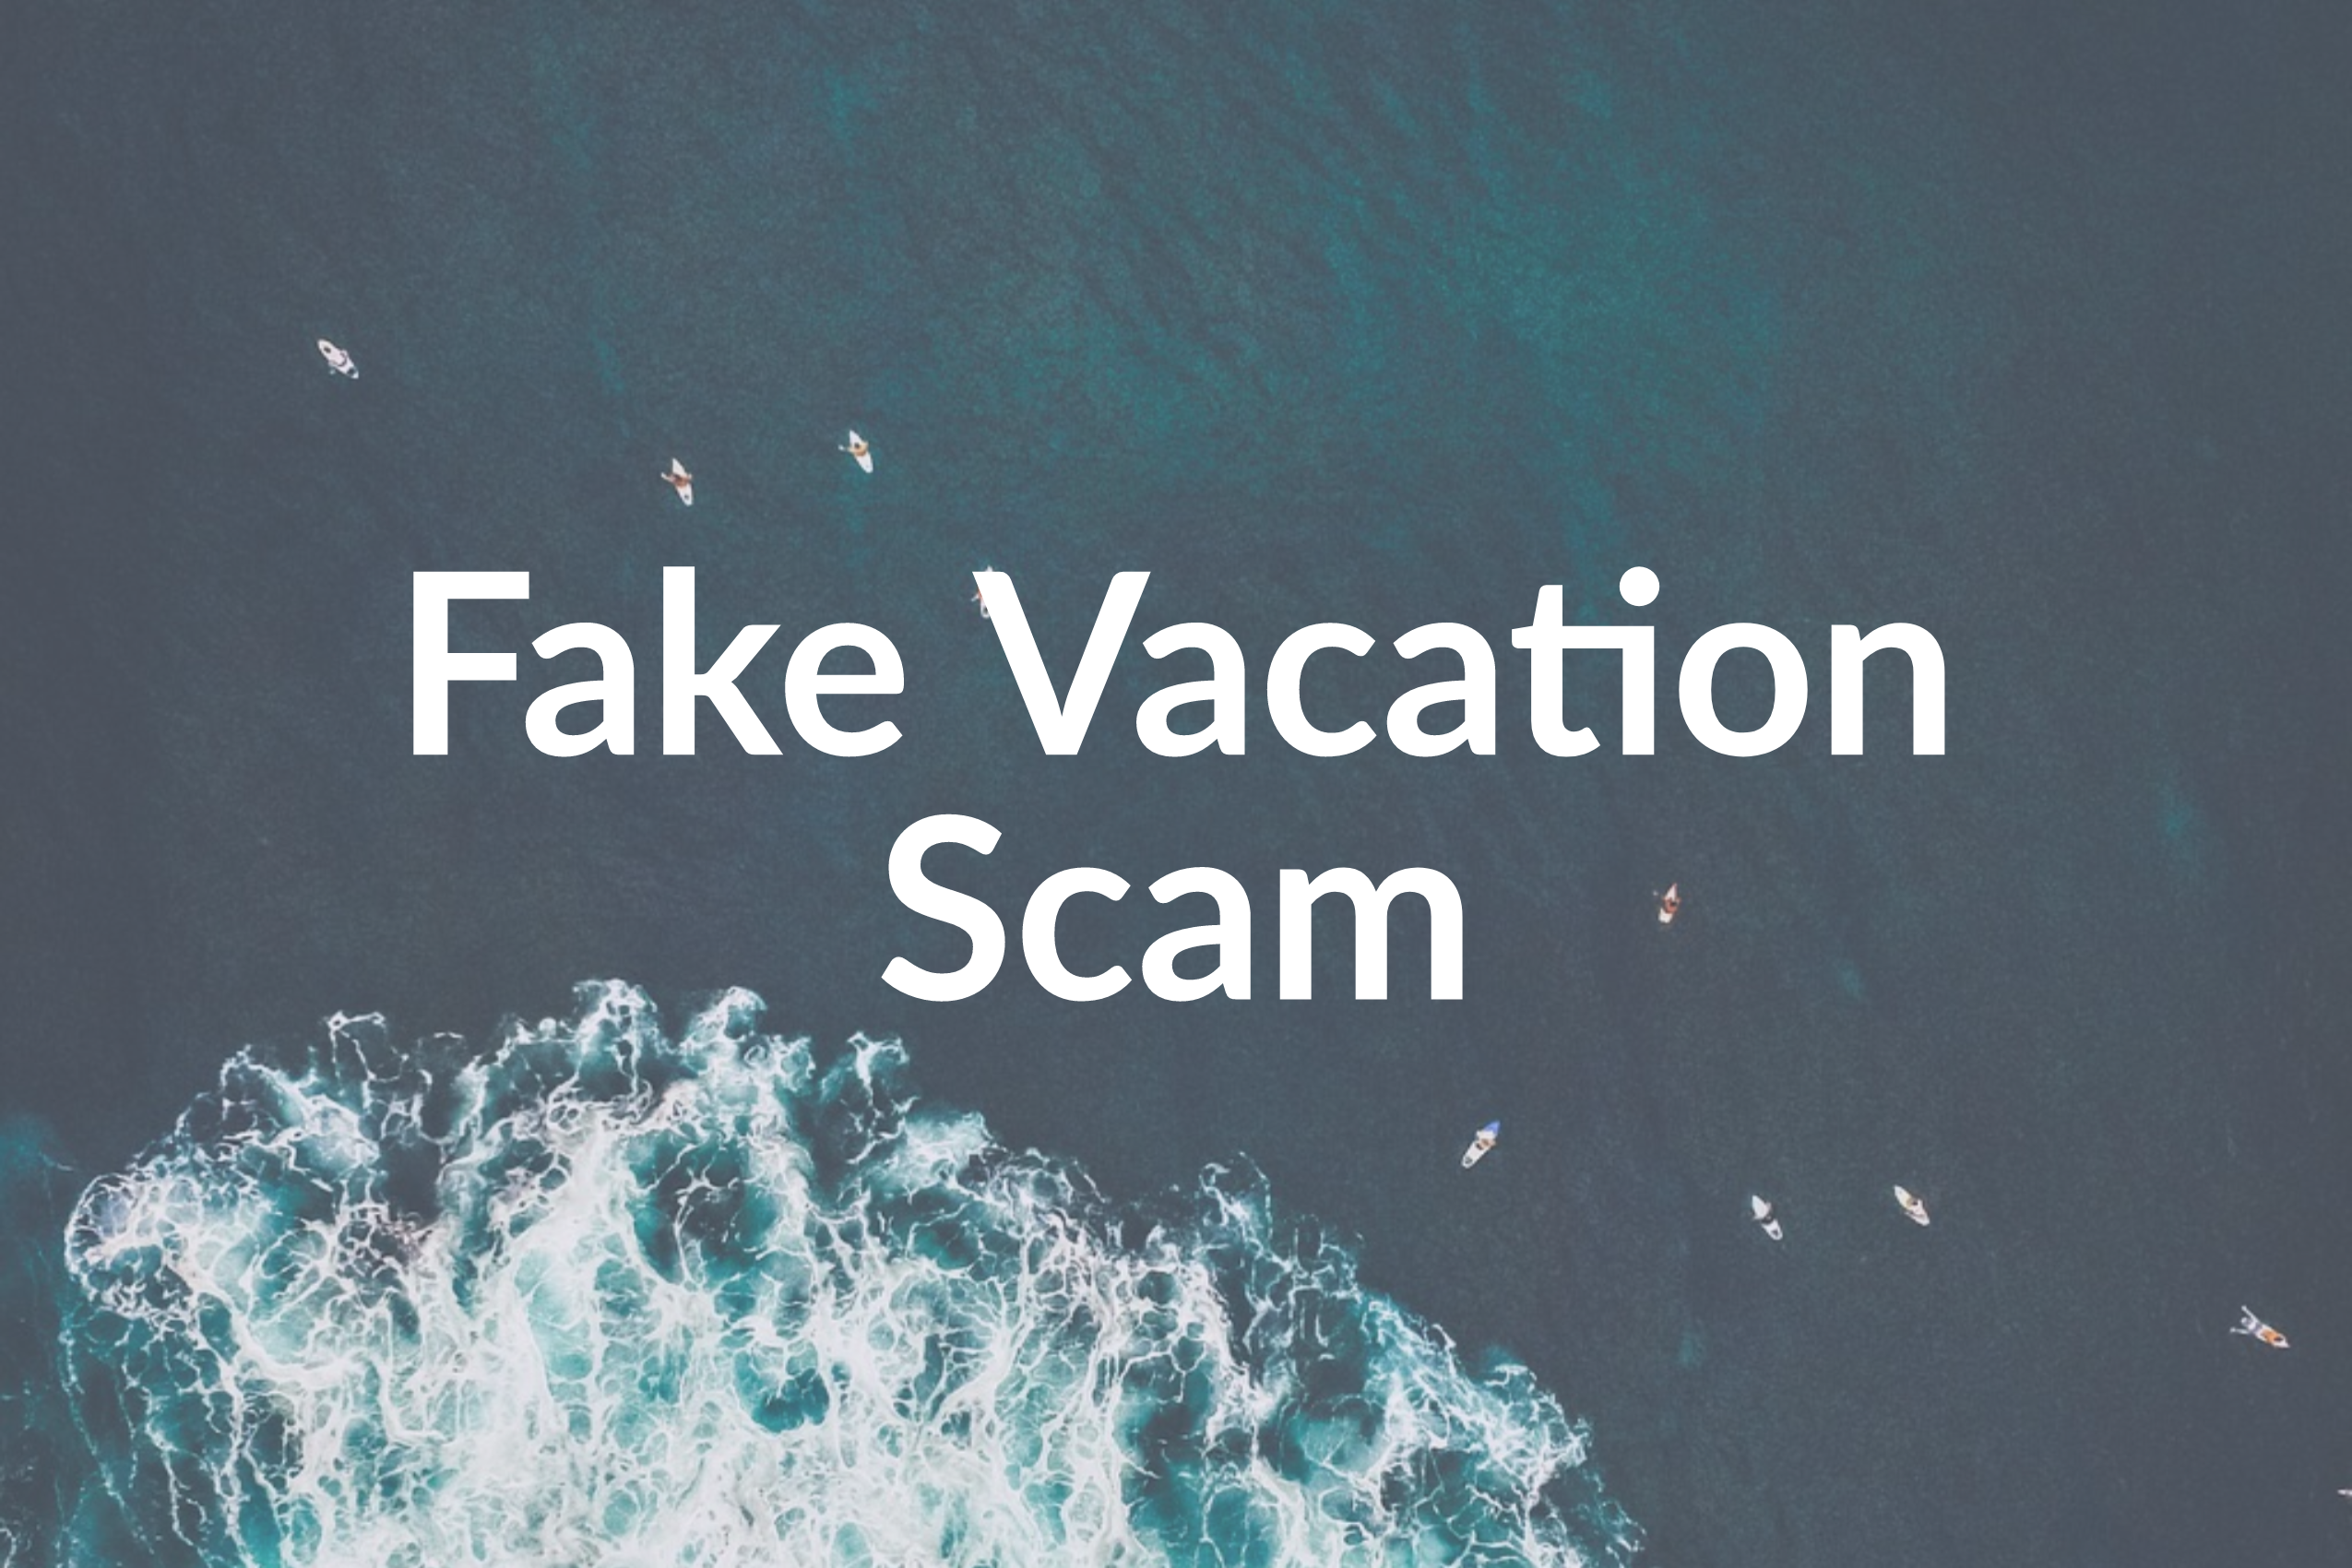 Fake A Vacation: Website Offers Luxurious Trips with Fake Photos